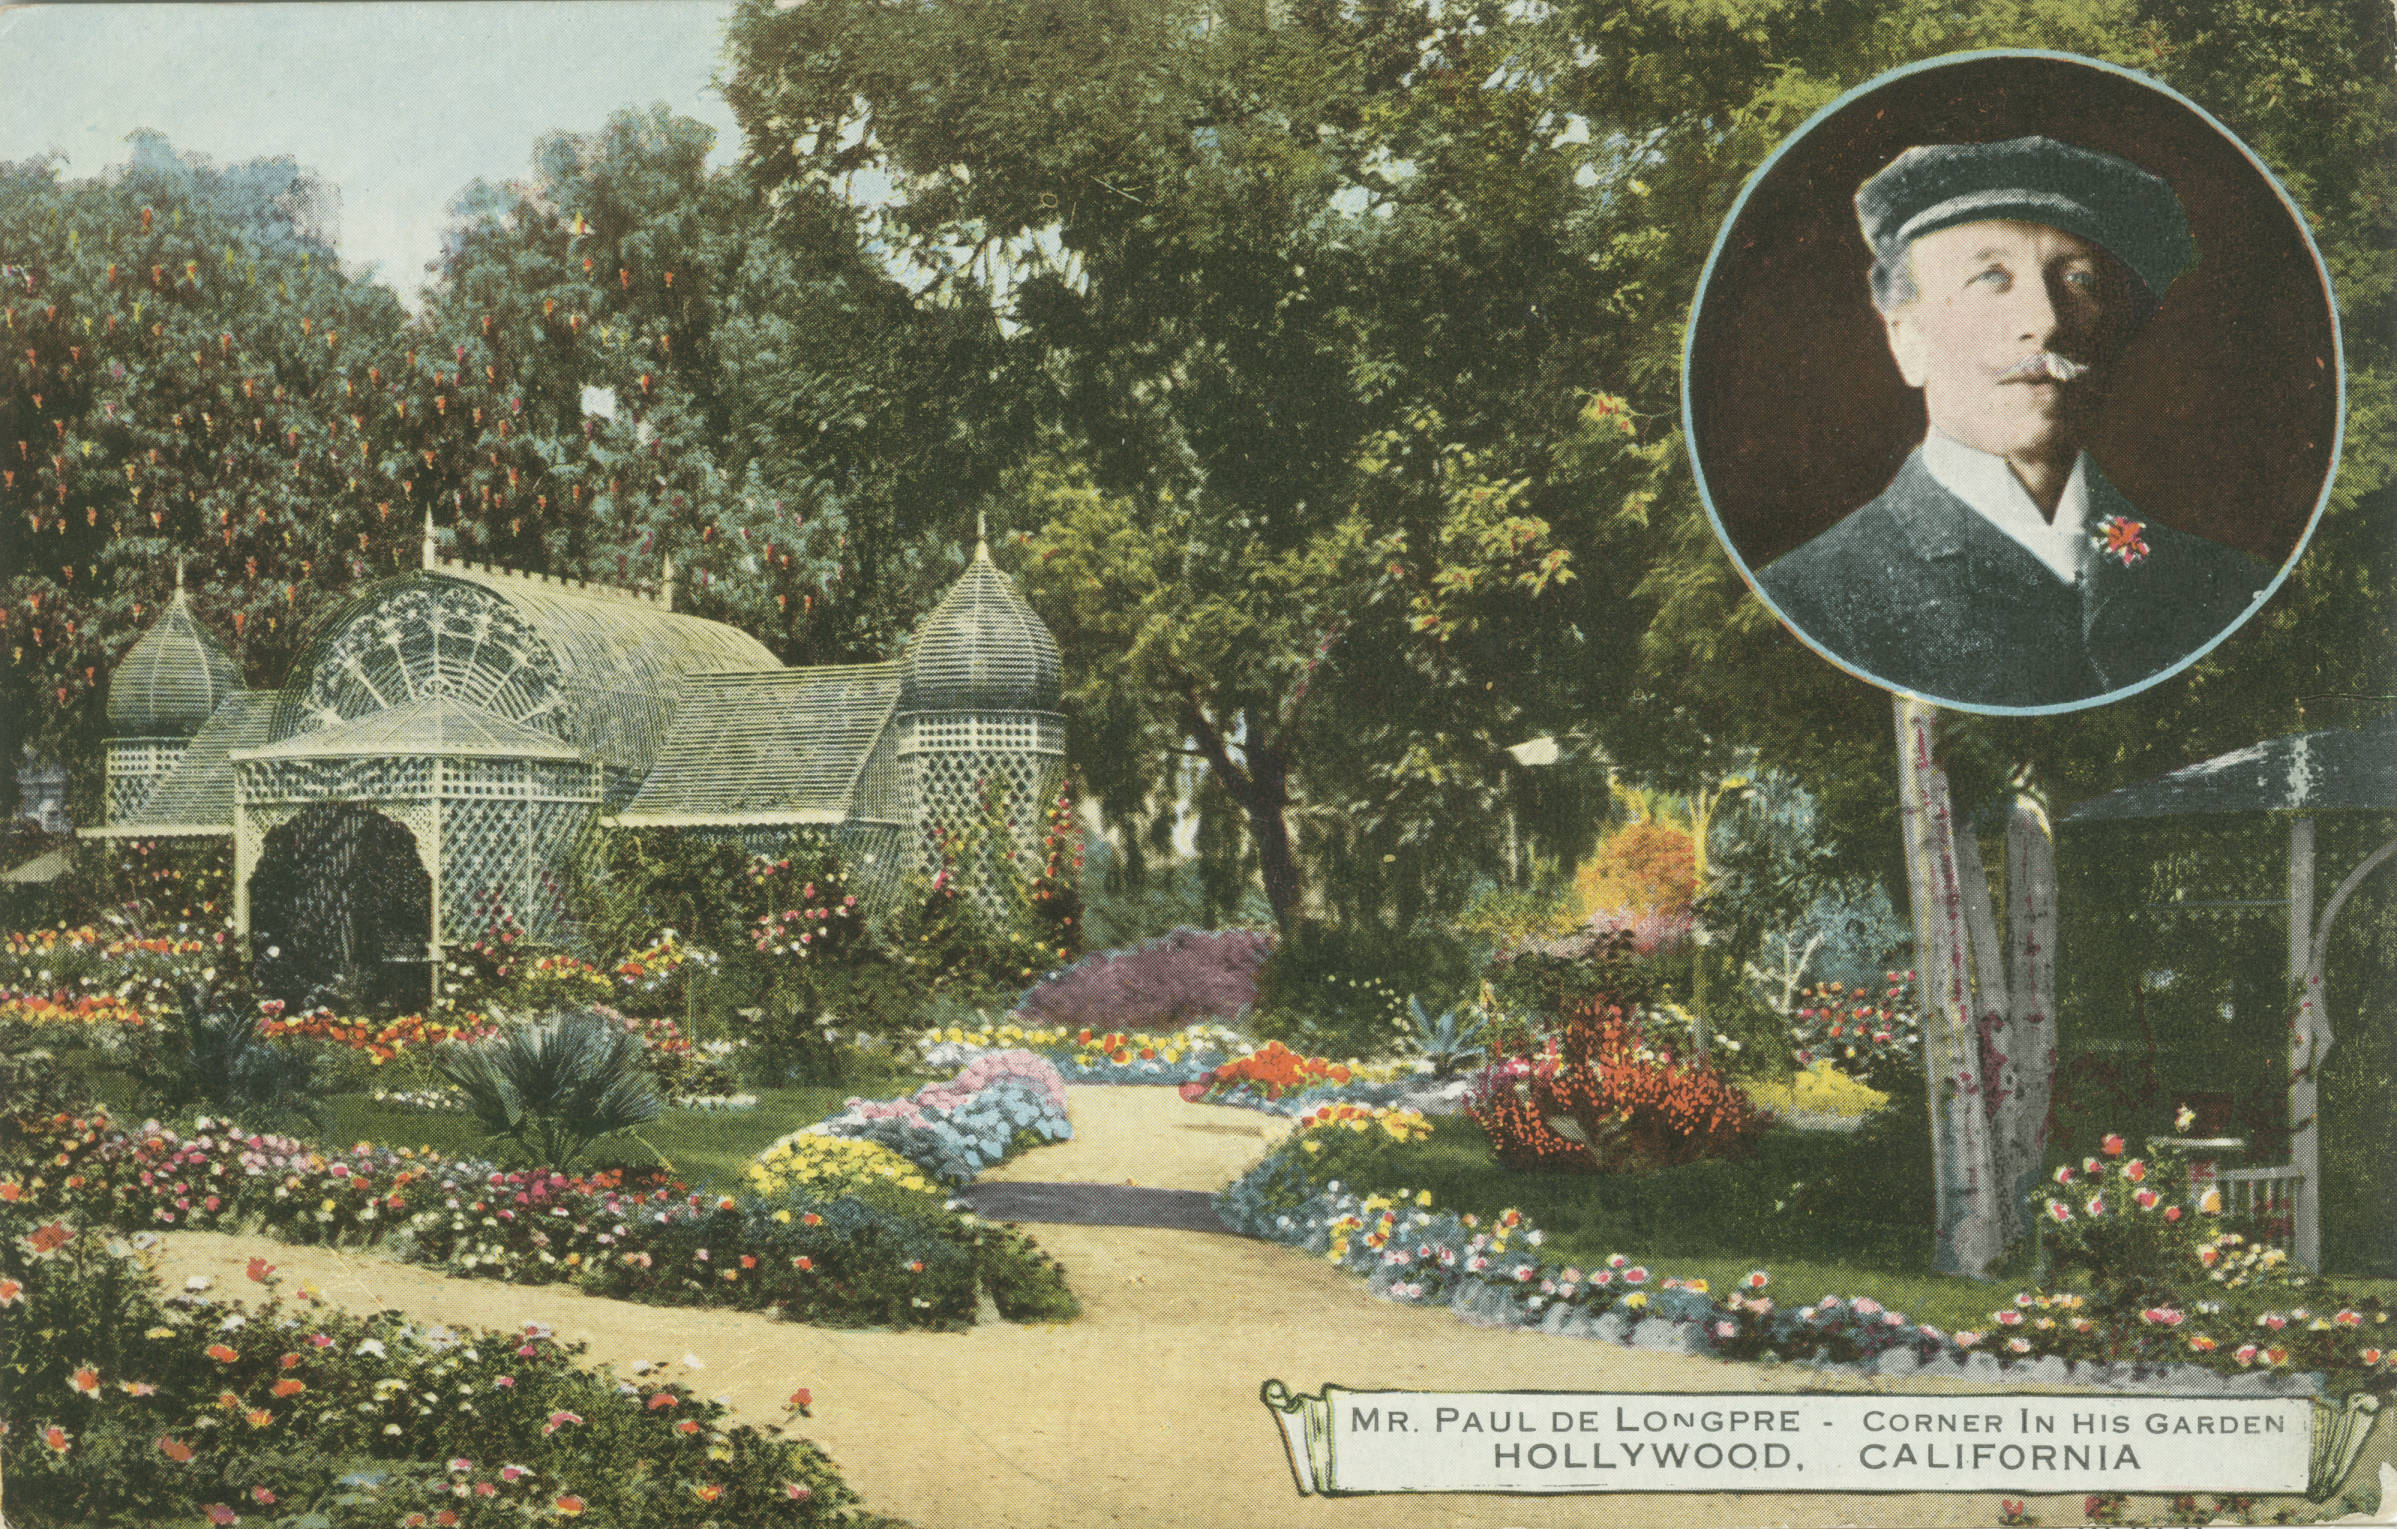 Postcard of Paul De Longpre's Hollywood garden